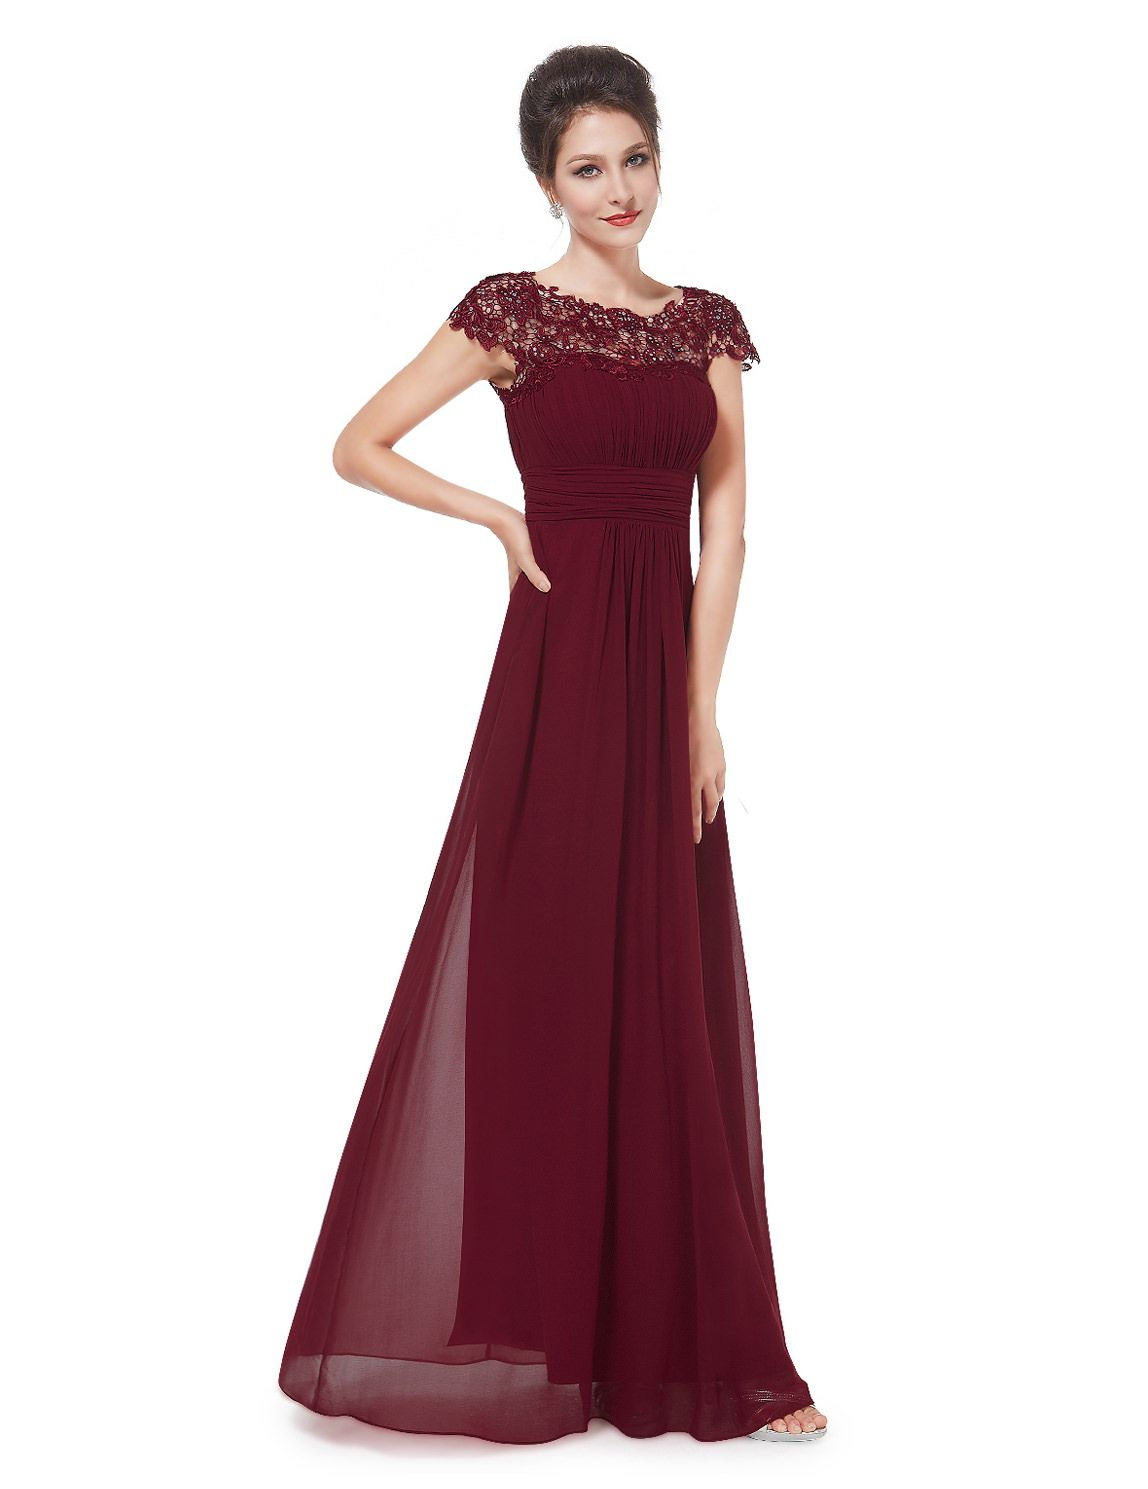 Edles langes Spitze Abendkleid in Bordeaux Rot  Abendkleid